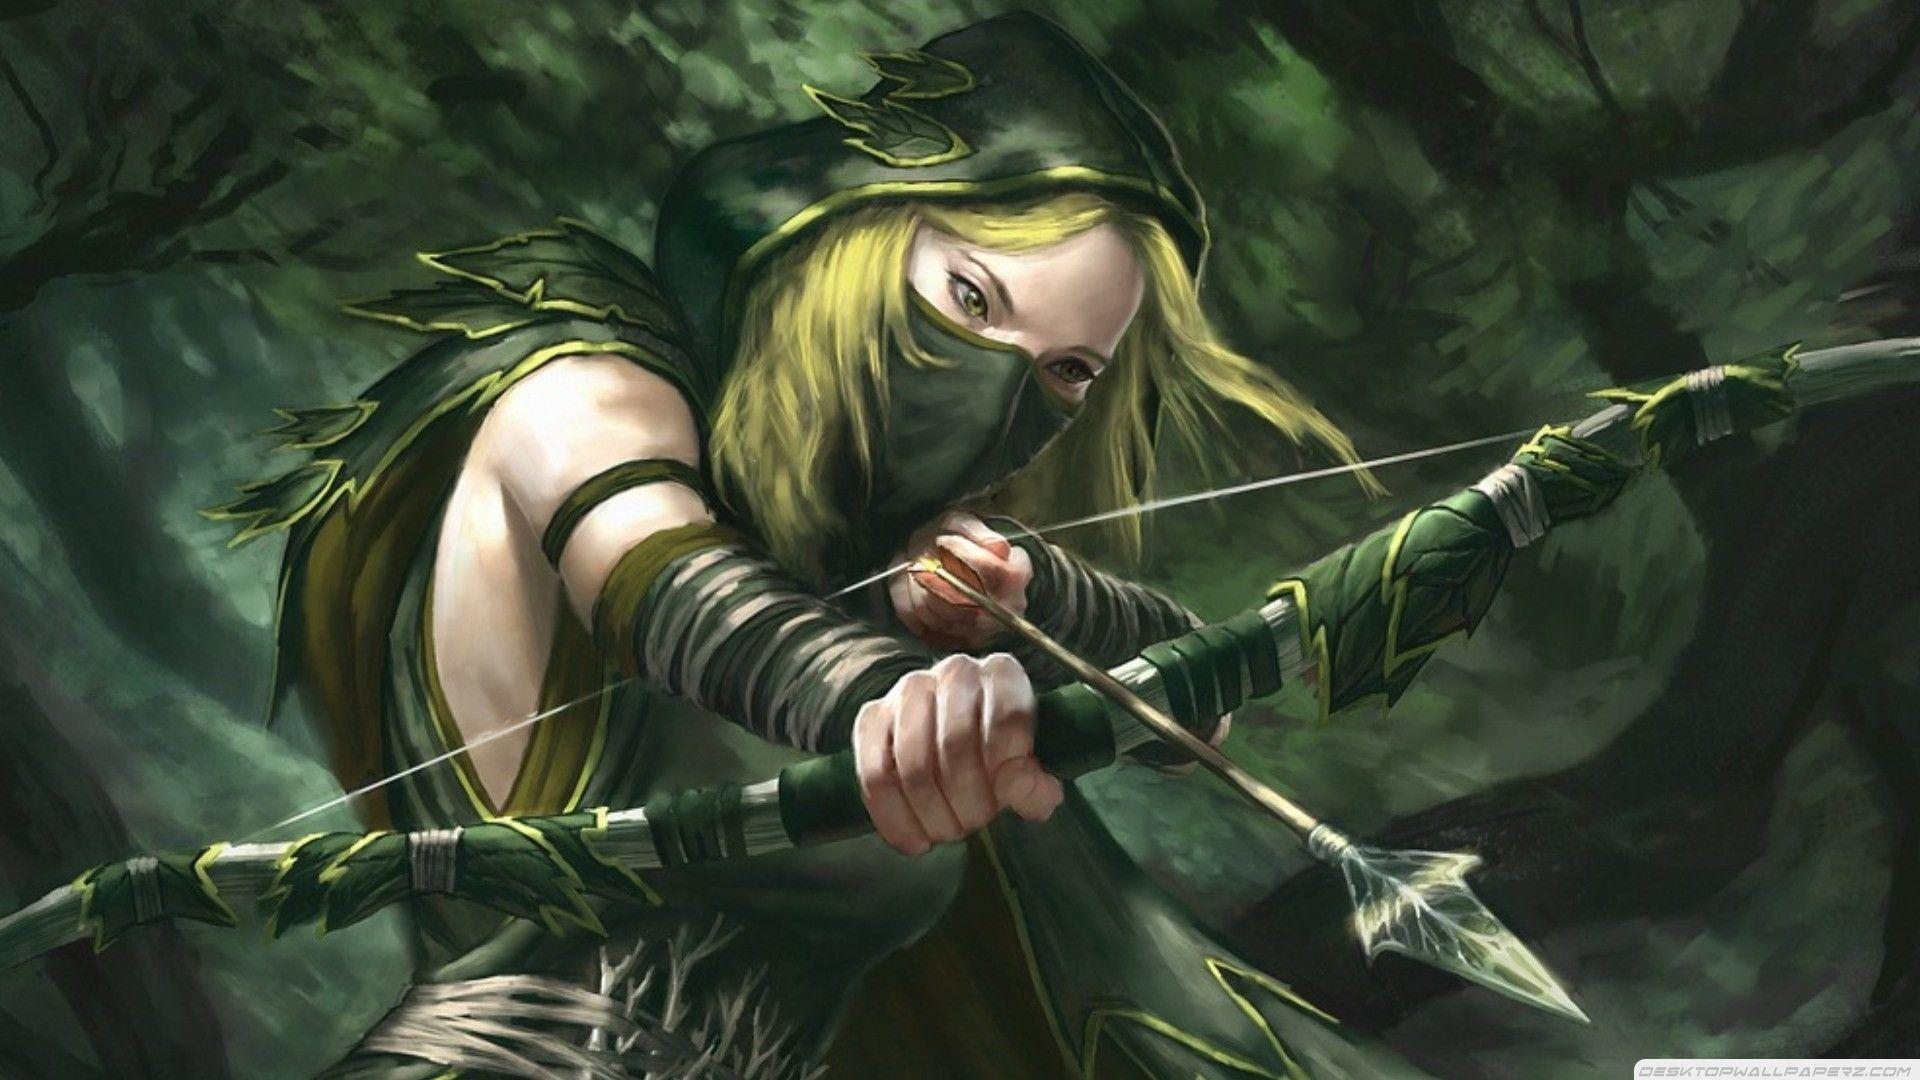 Fantasy Art Artwork Green Arrow Archer Girl Long